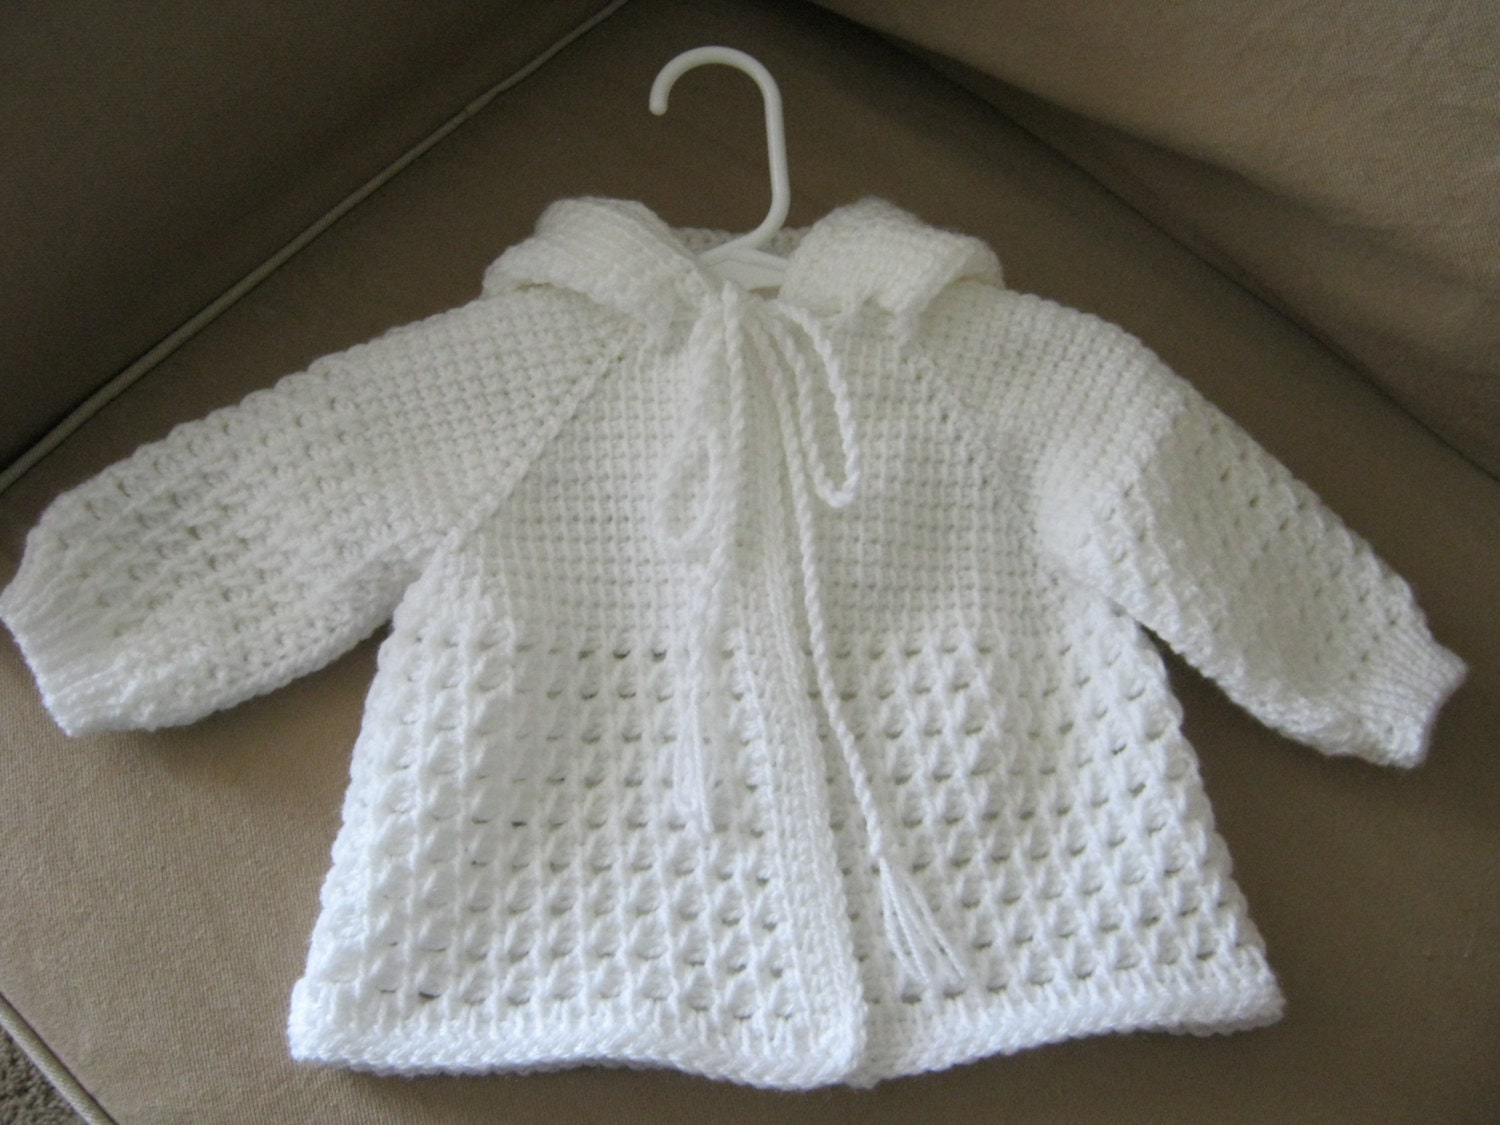 White Crochet Baby Sweater with Hood for Boy or Girl